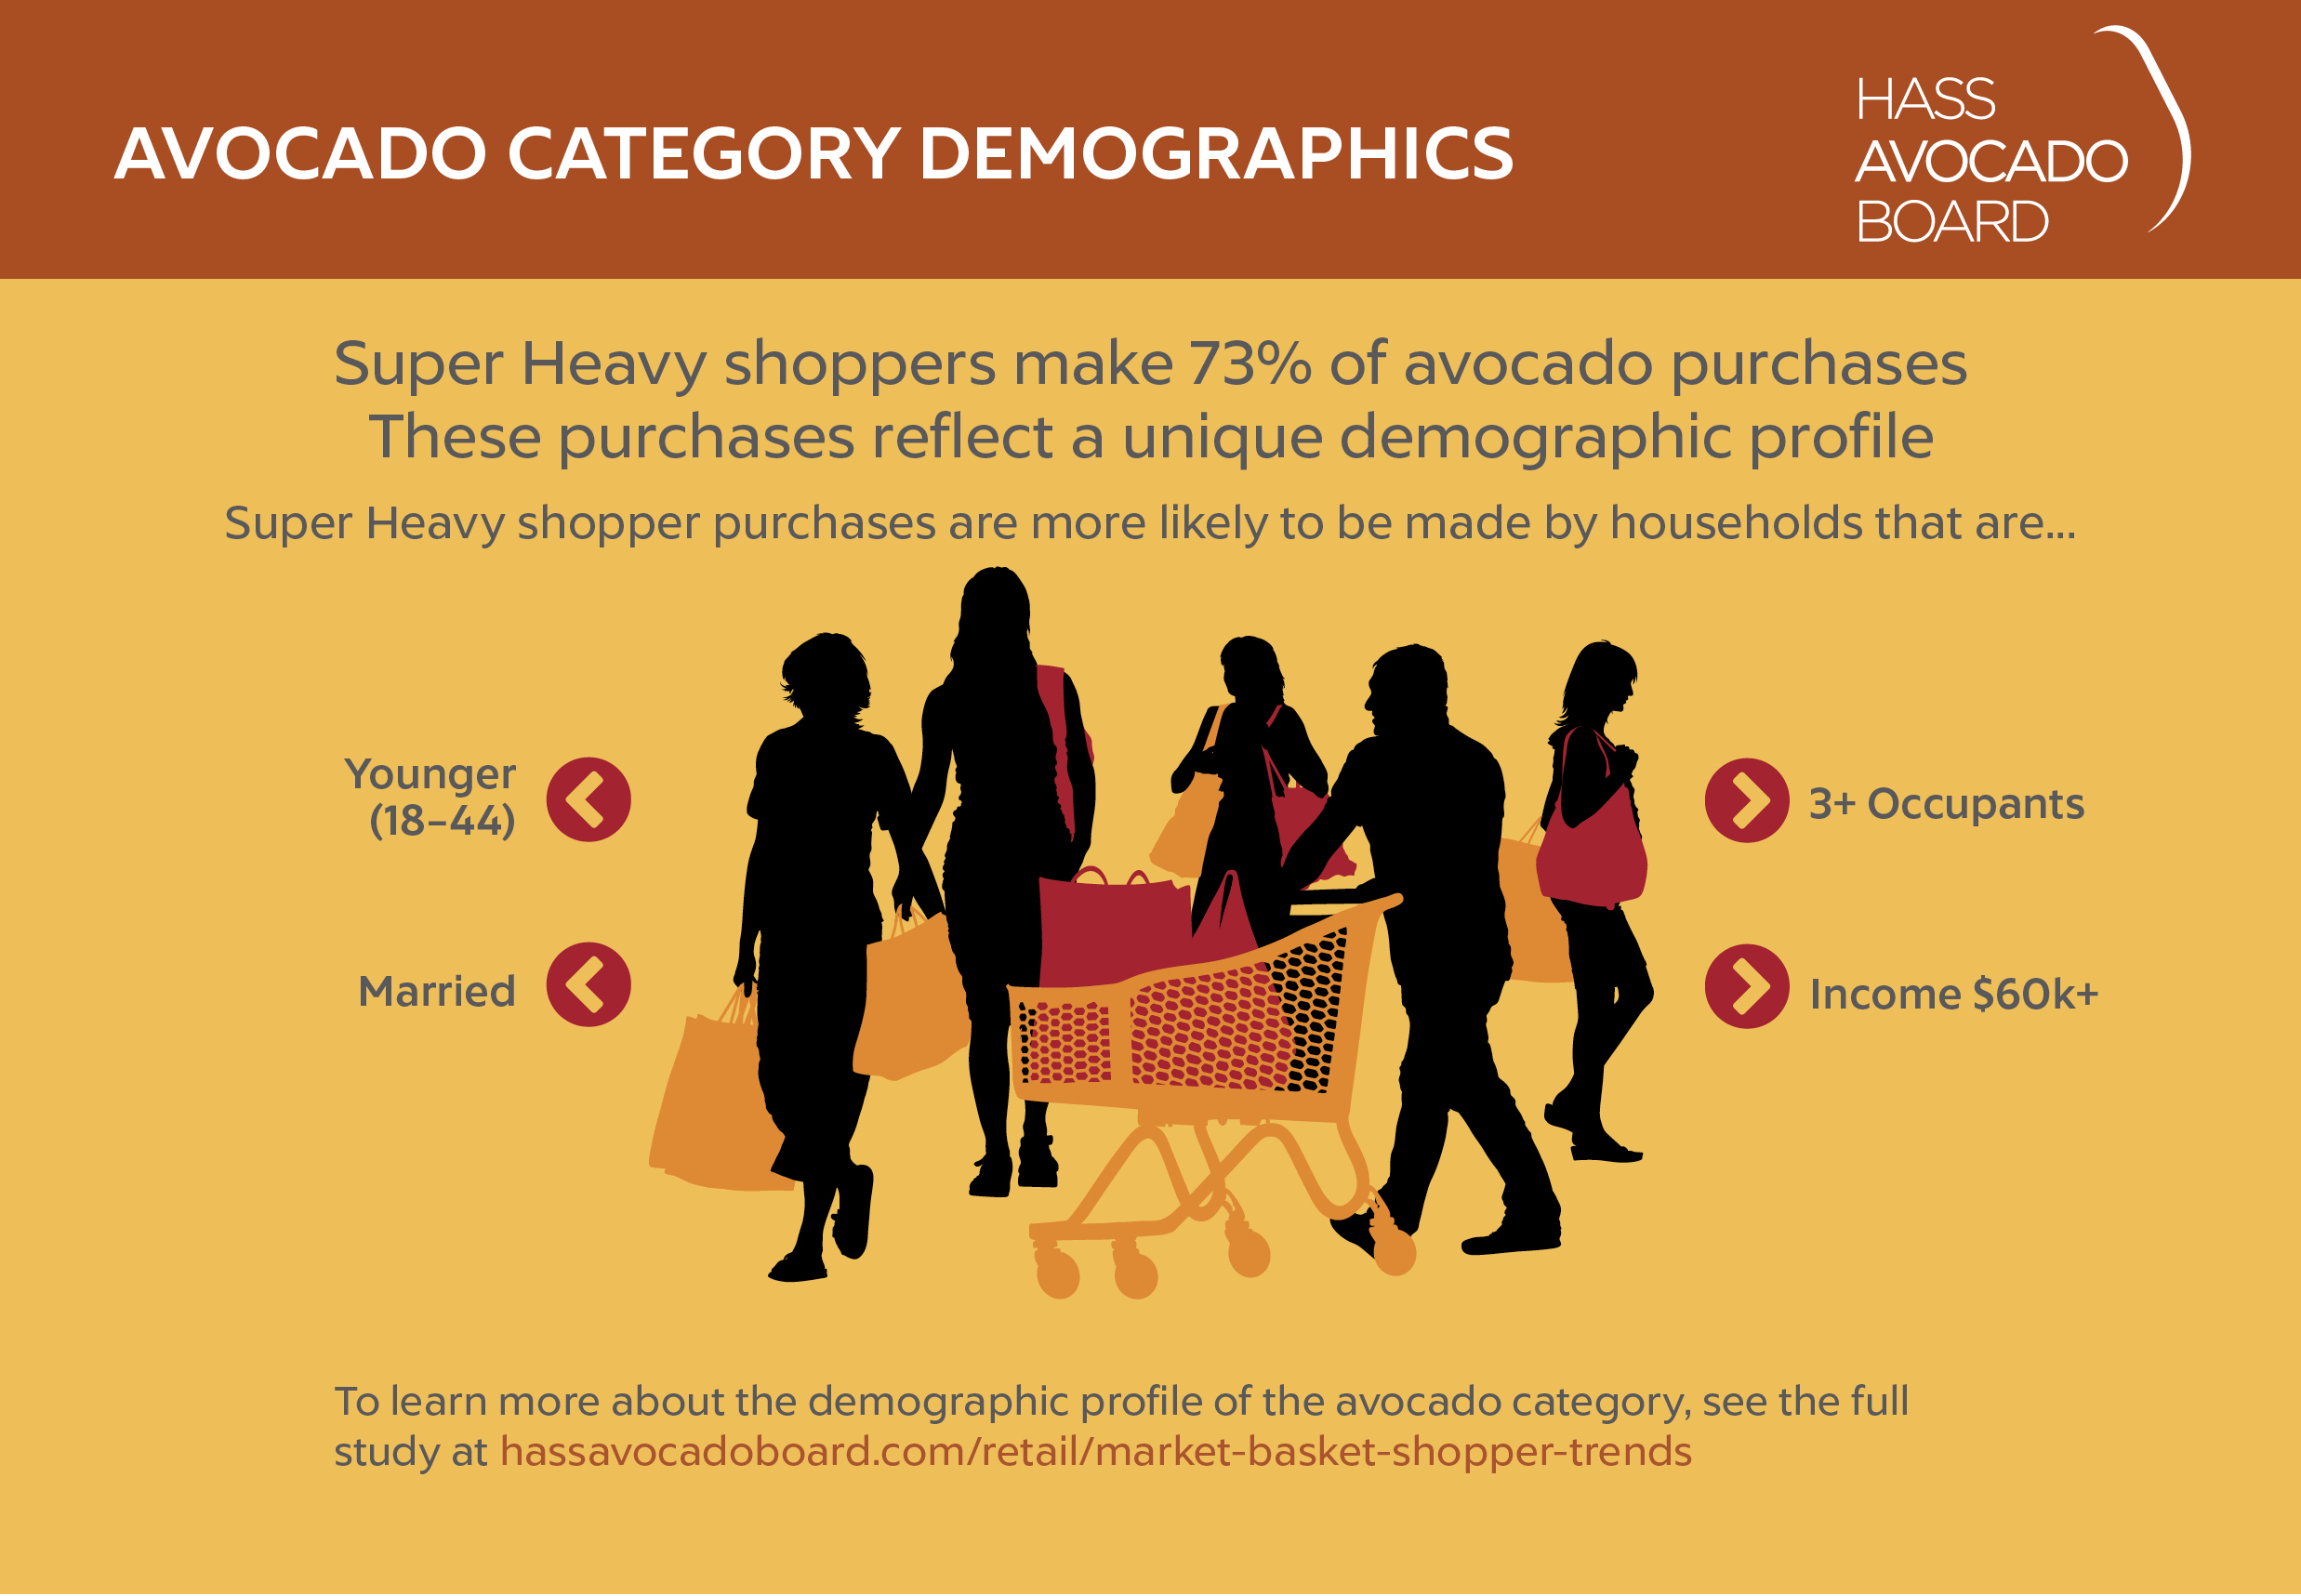 Graphic featuring silhoute of grocery shoppers and the market demographics of avocado purchases